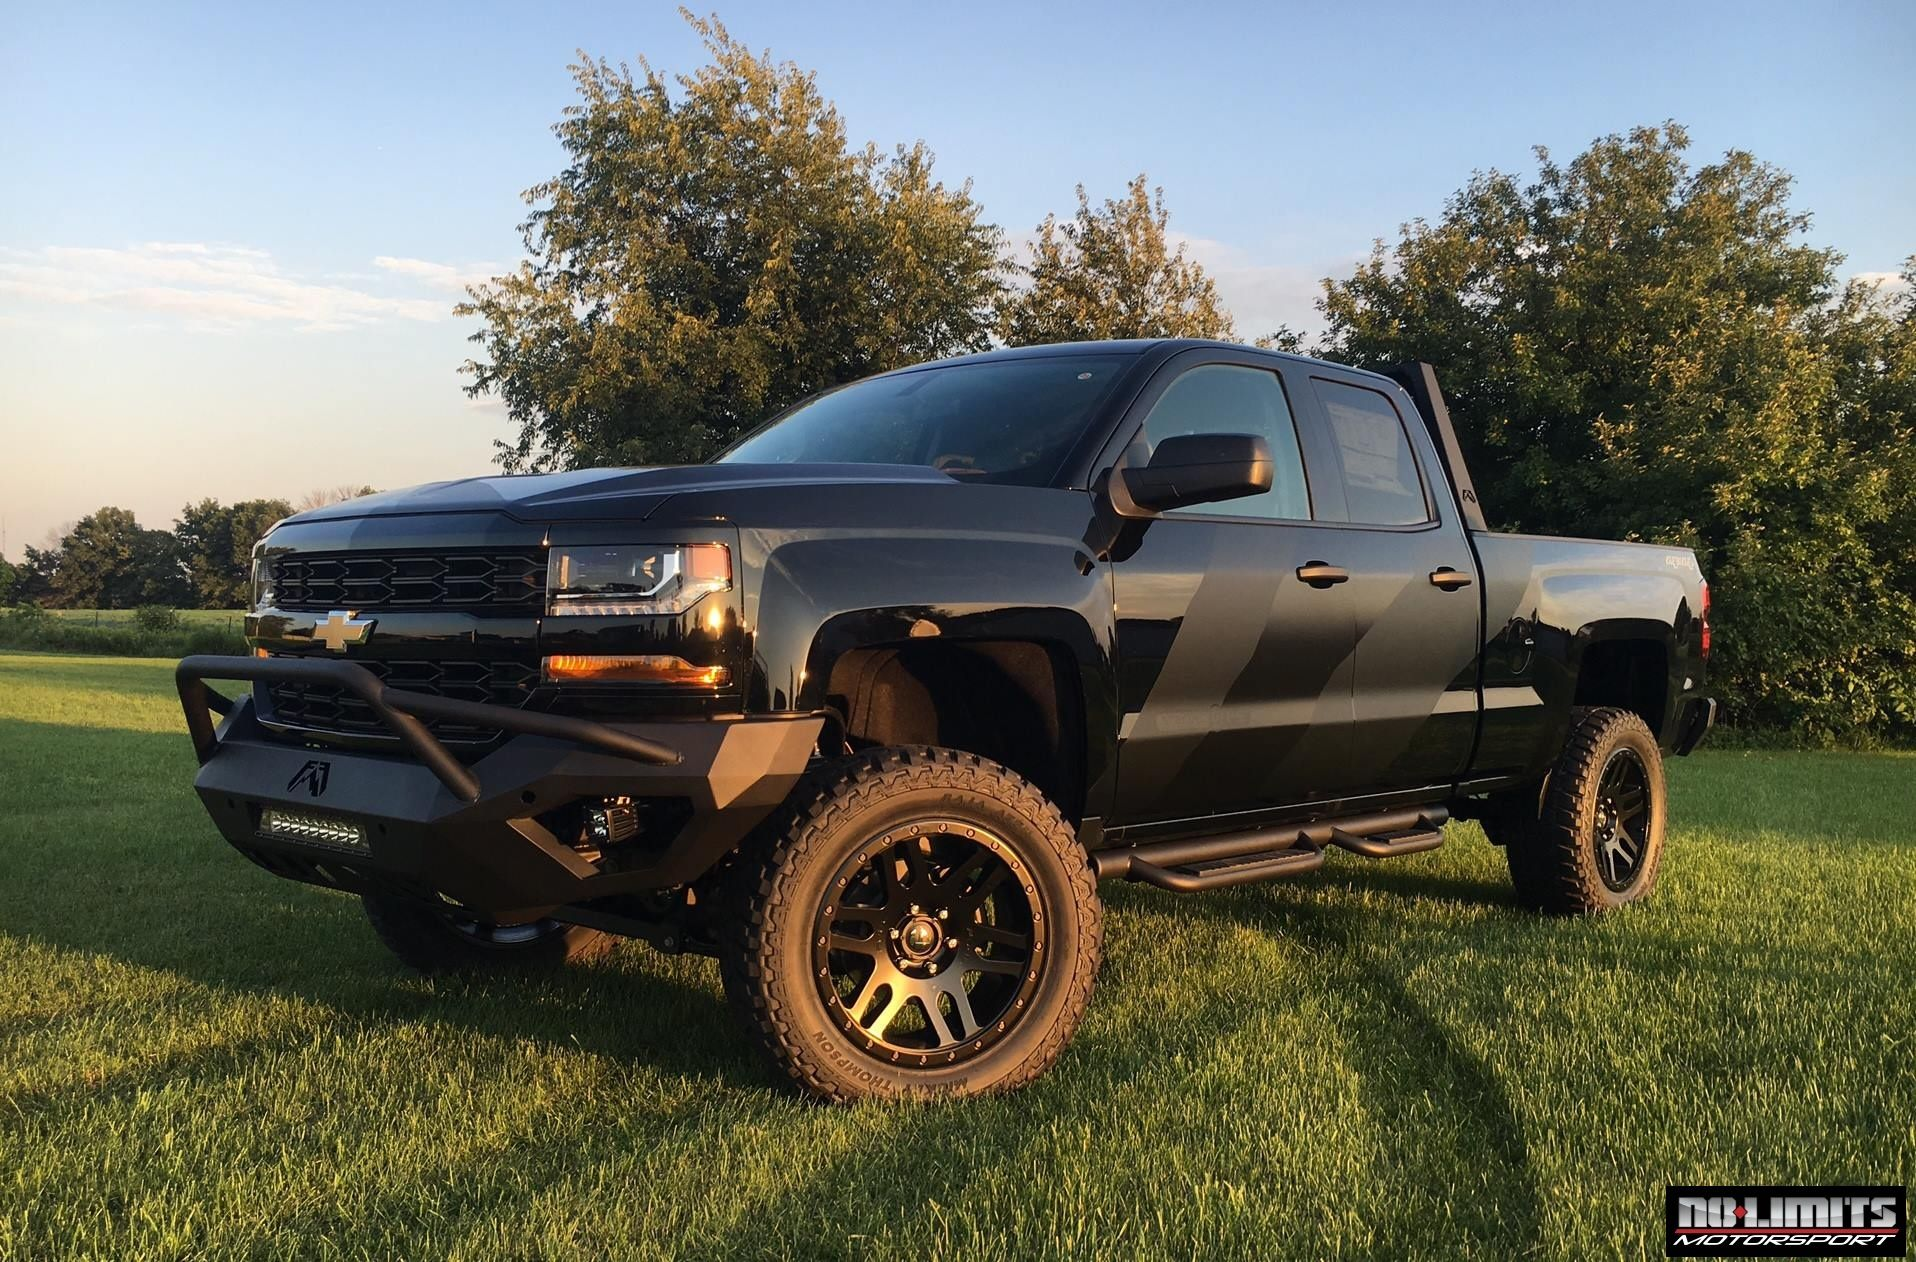 2016 Chevy Silverado Special Ops Edition Customized By No Limits Motorsport